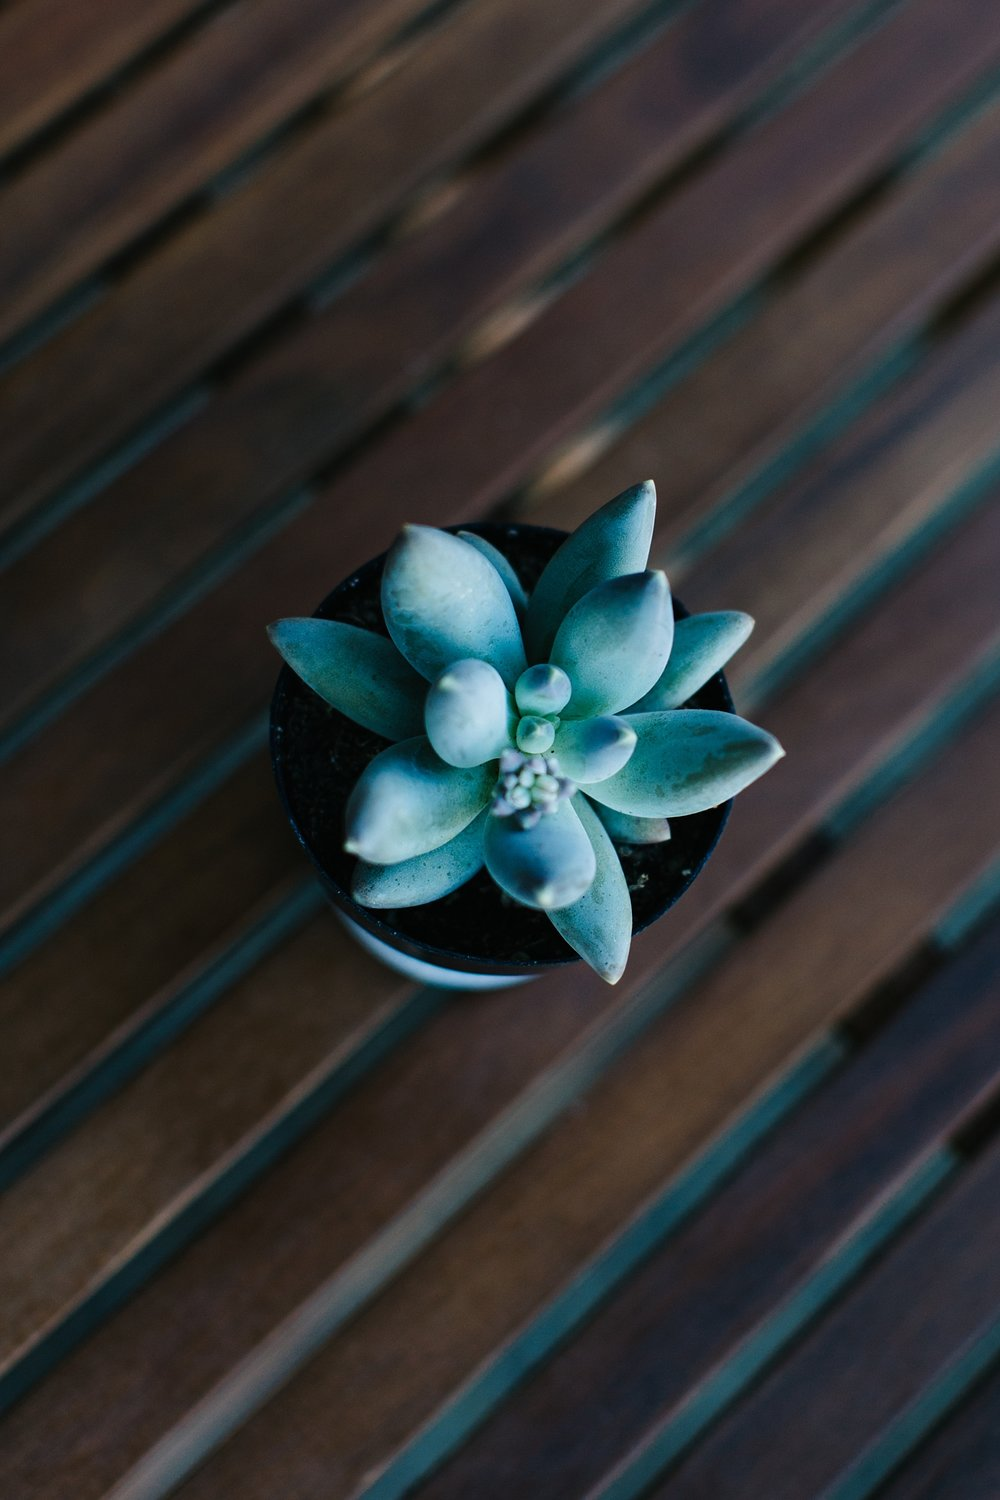 Pachyphytum bracteosum with plump blue succulent leaves.